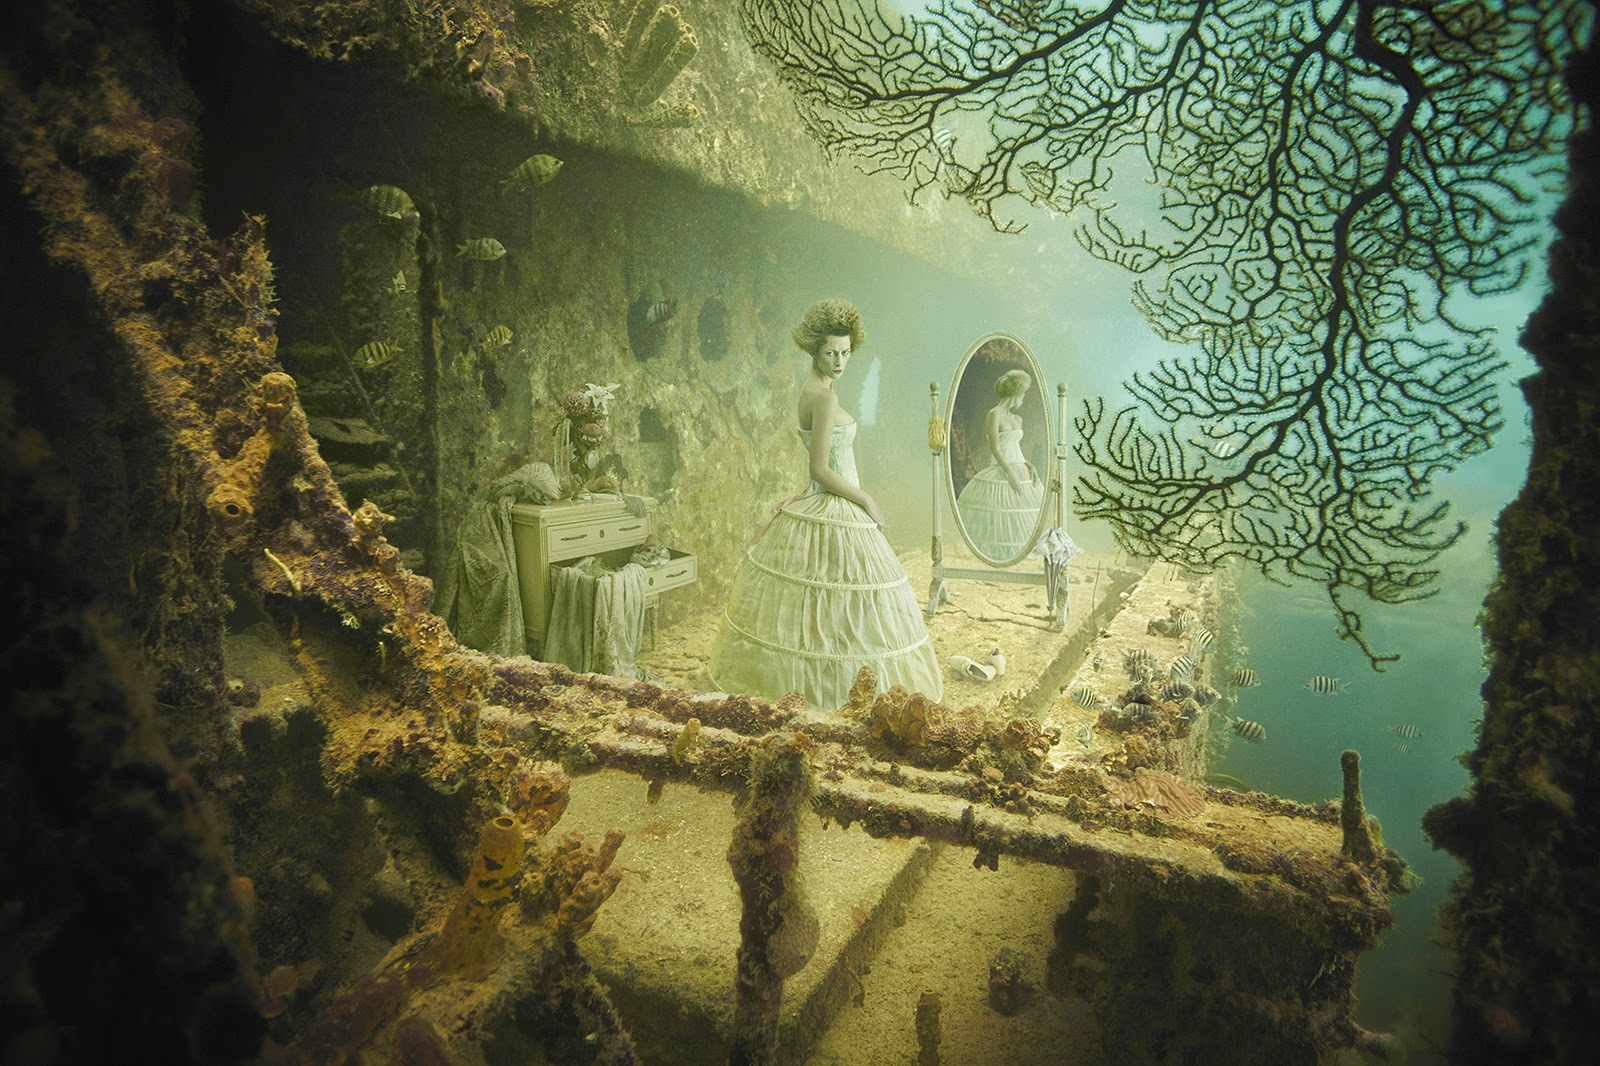 08-Andreas-Franke-Surreal-Artificial-Reef-Photography-www-designstack-co